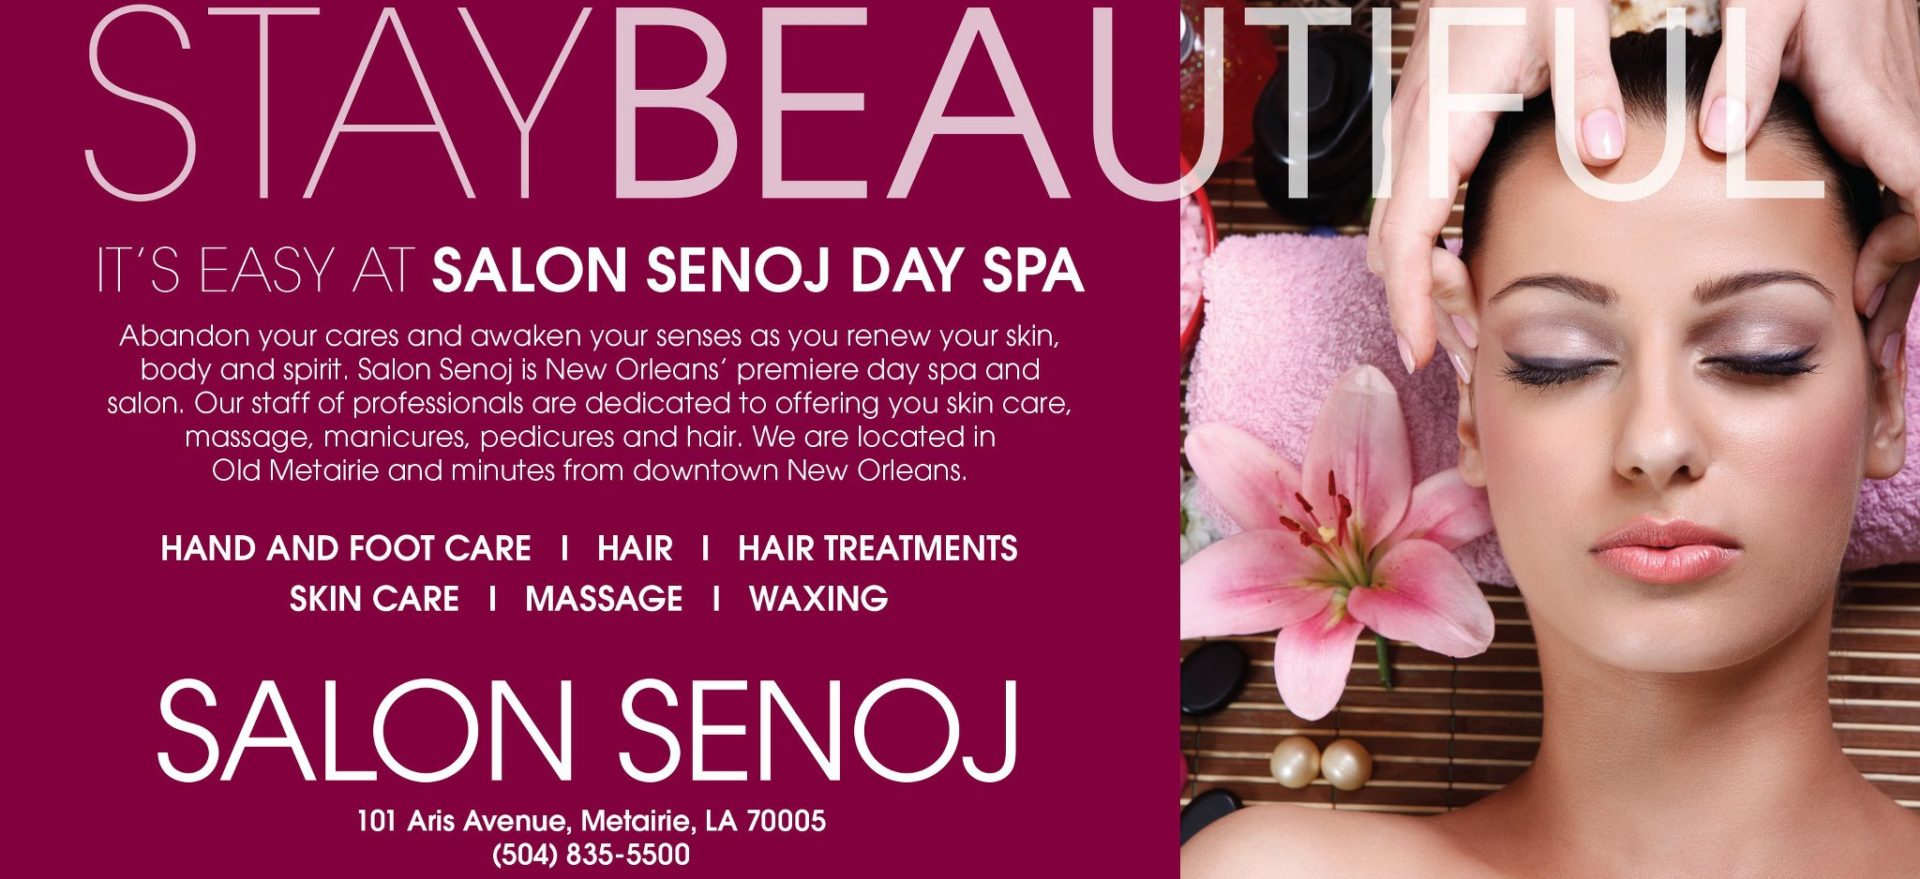 Salon Senoj Day Spa